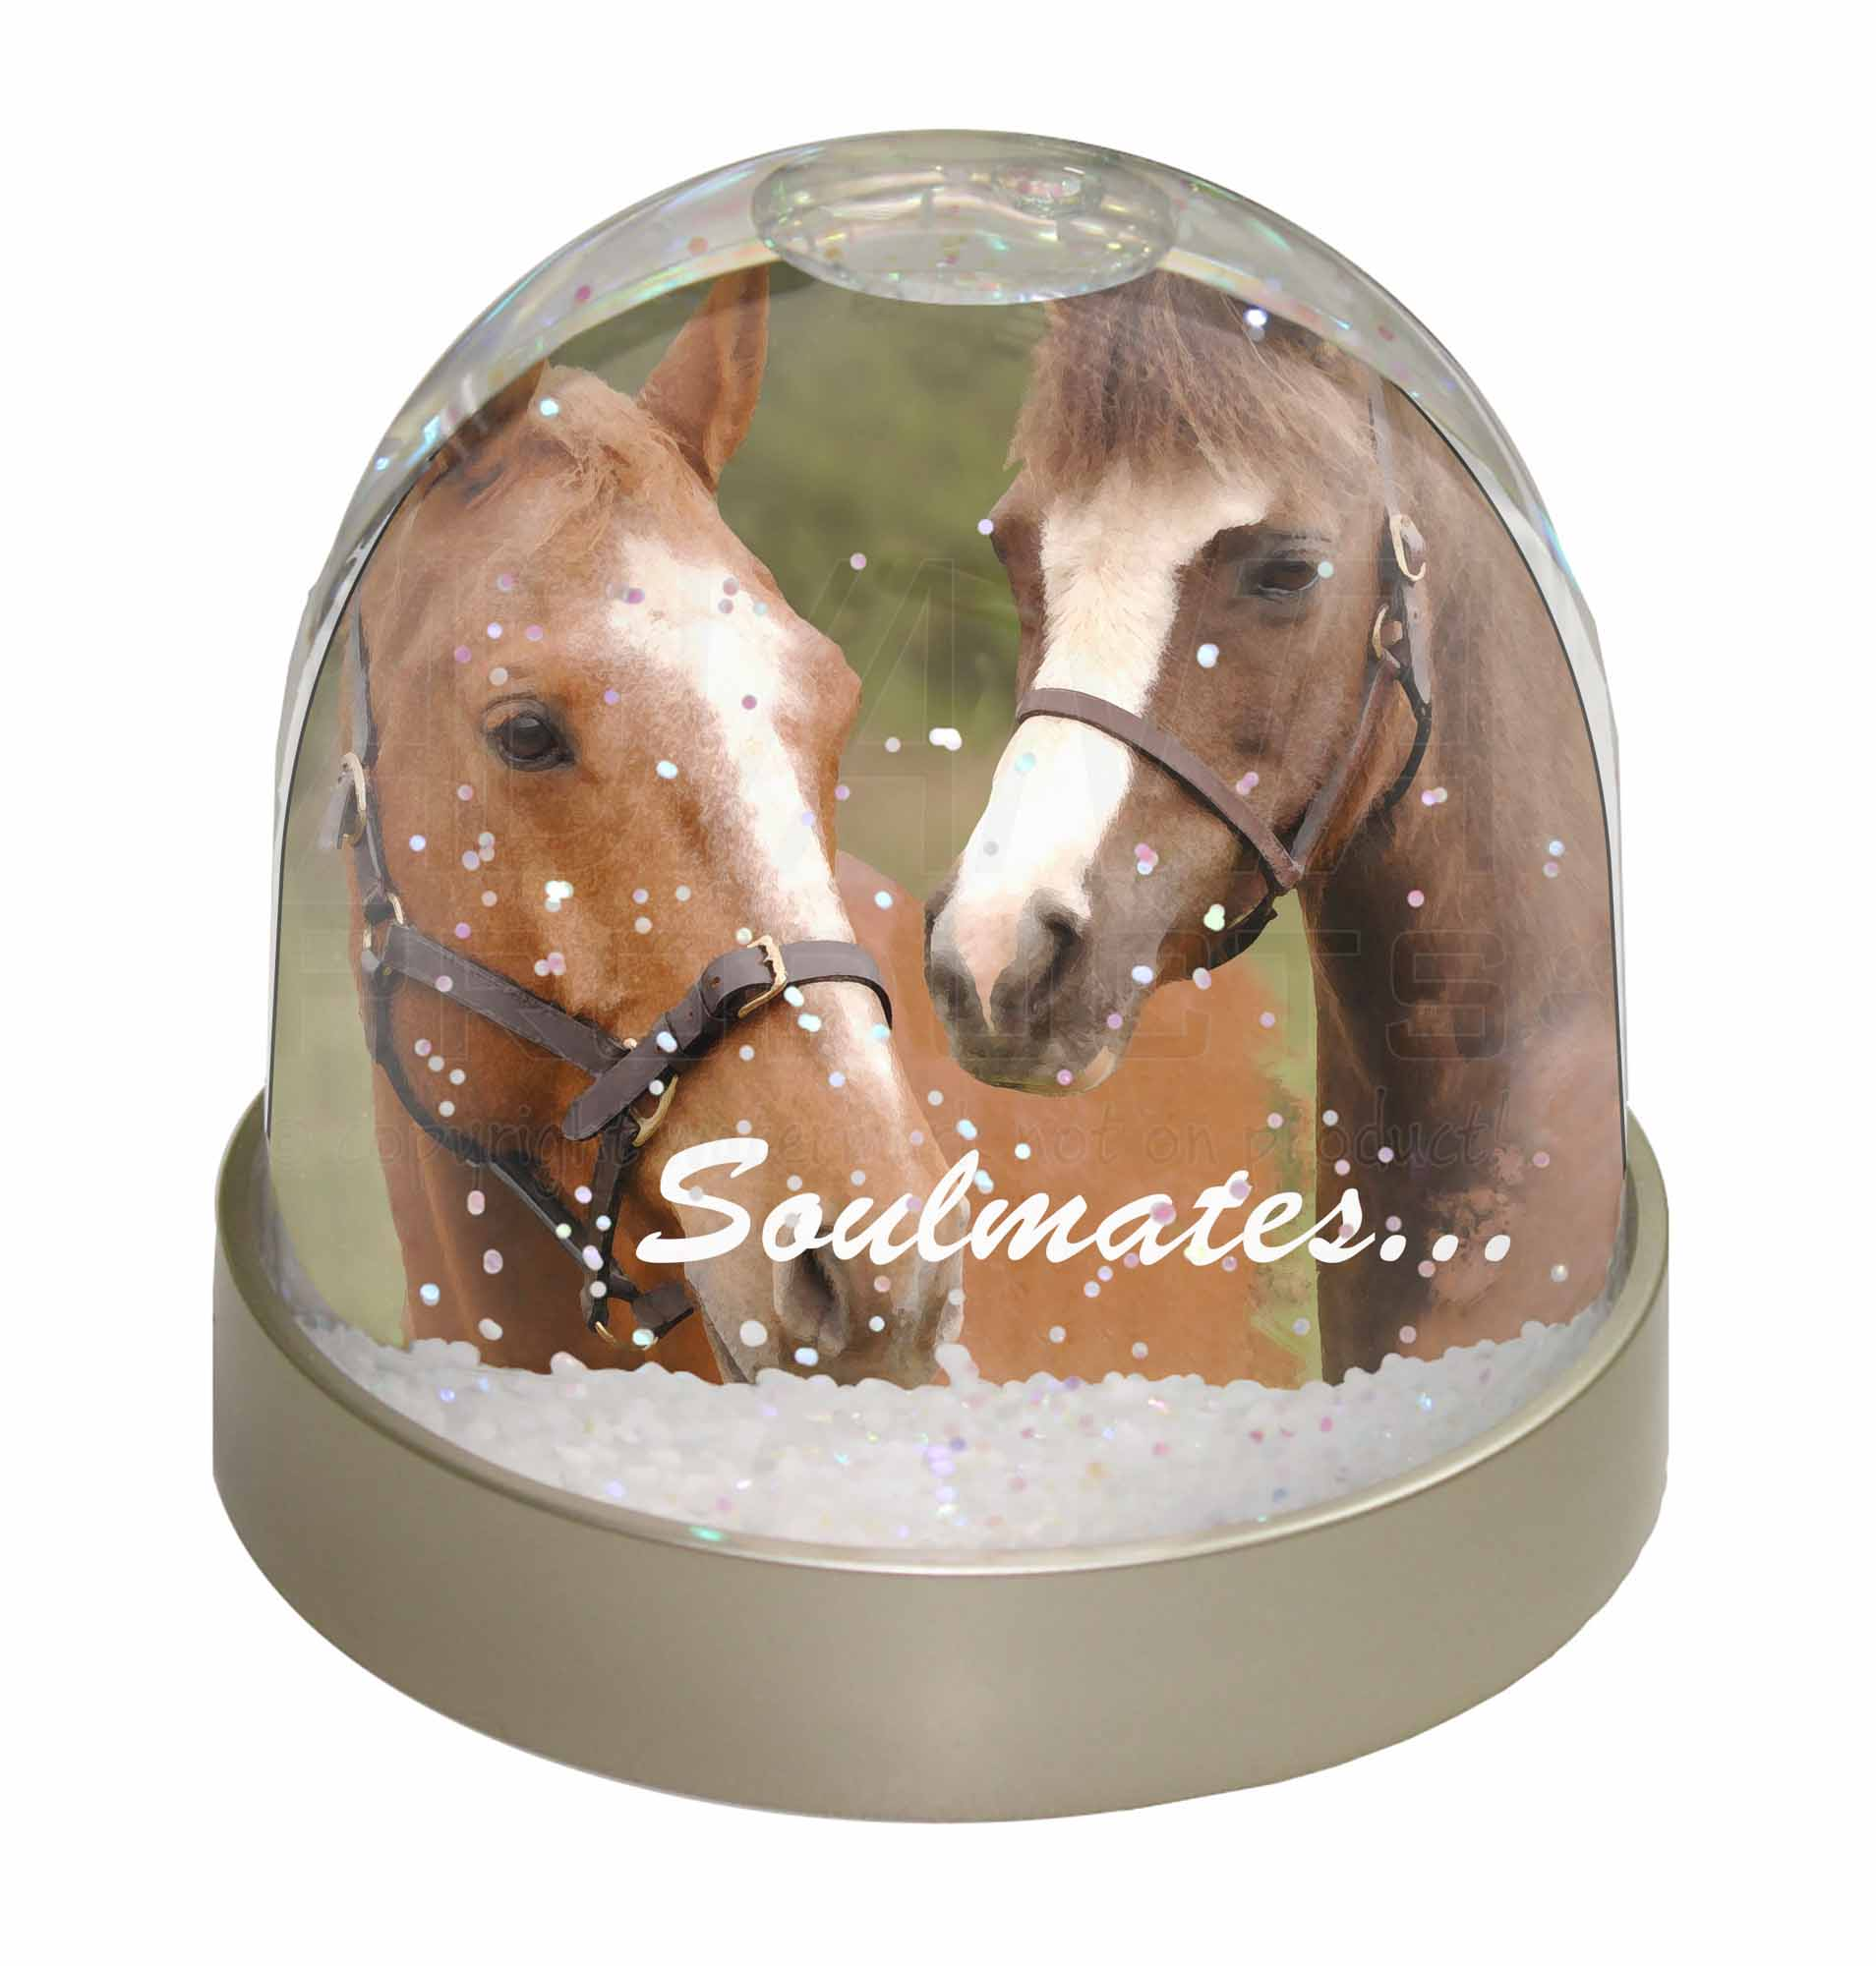 chevaux mes soeurs sentiment photo neige globe waterball chaussette remplir ebay. Black Bedroom Furniture Sets. Home Design Ideas